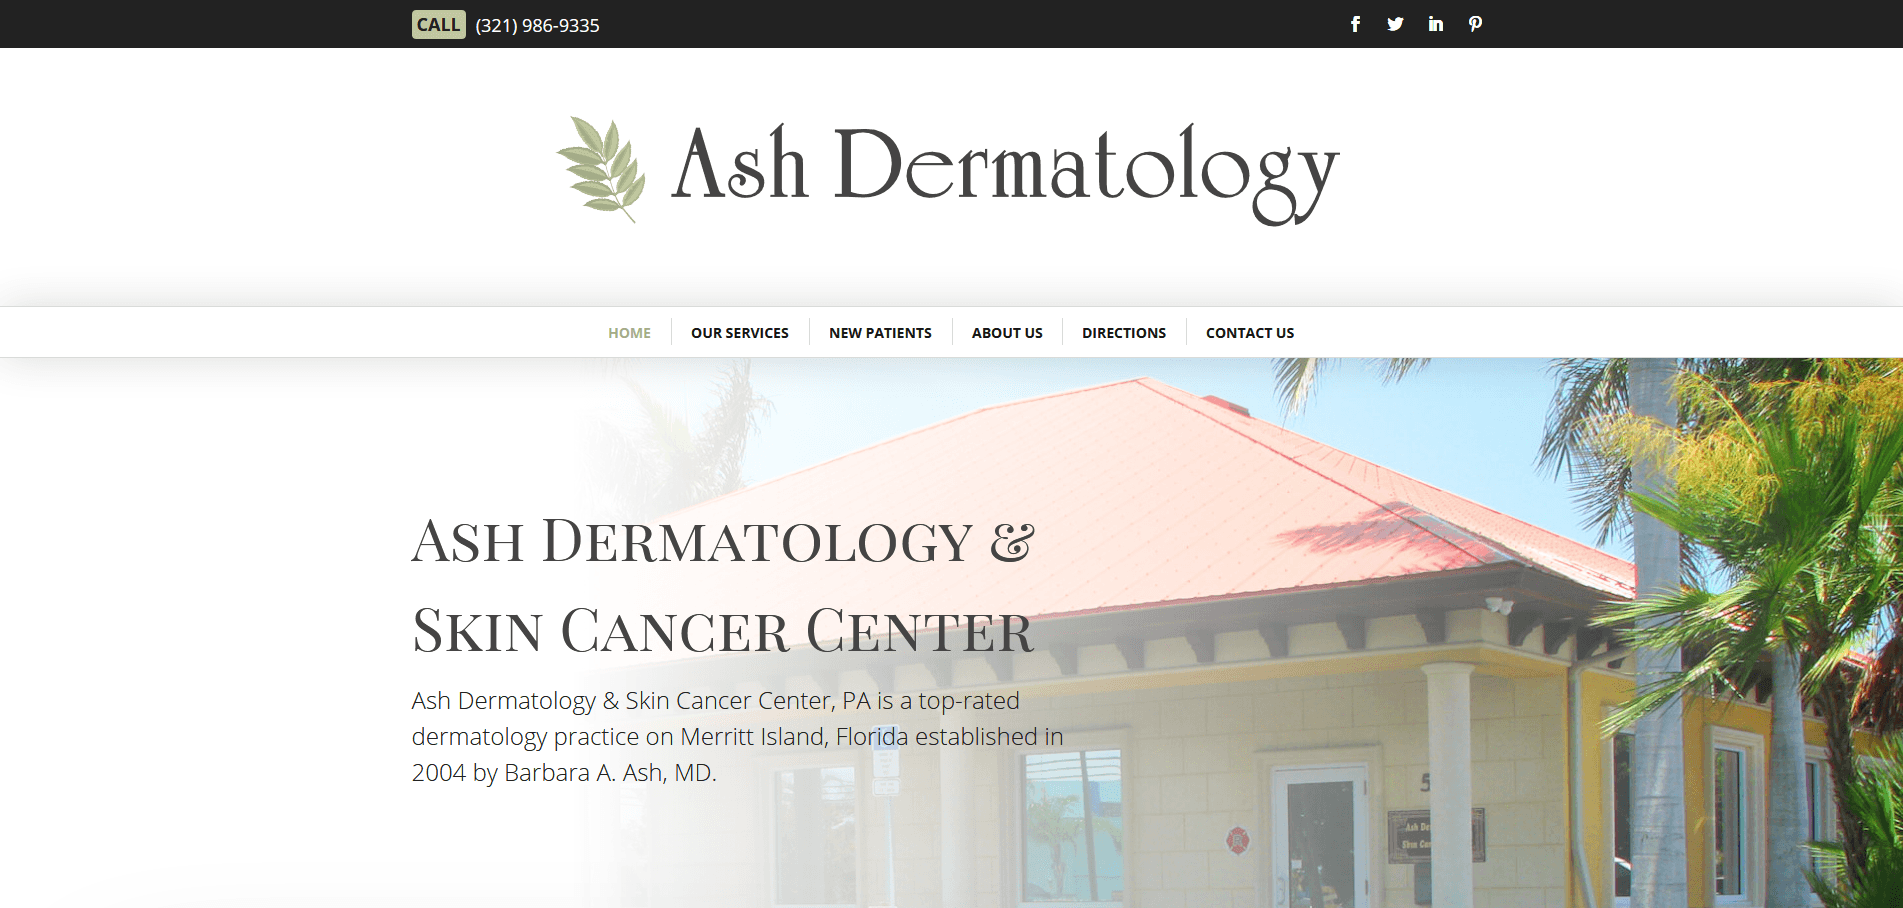 Ash Dermatology Merritt Island Wordpress Website Design Project Hero Section